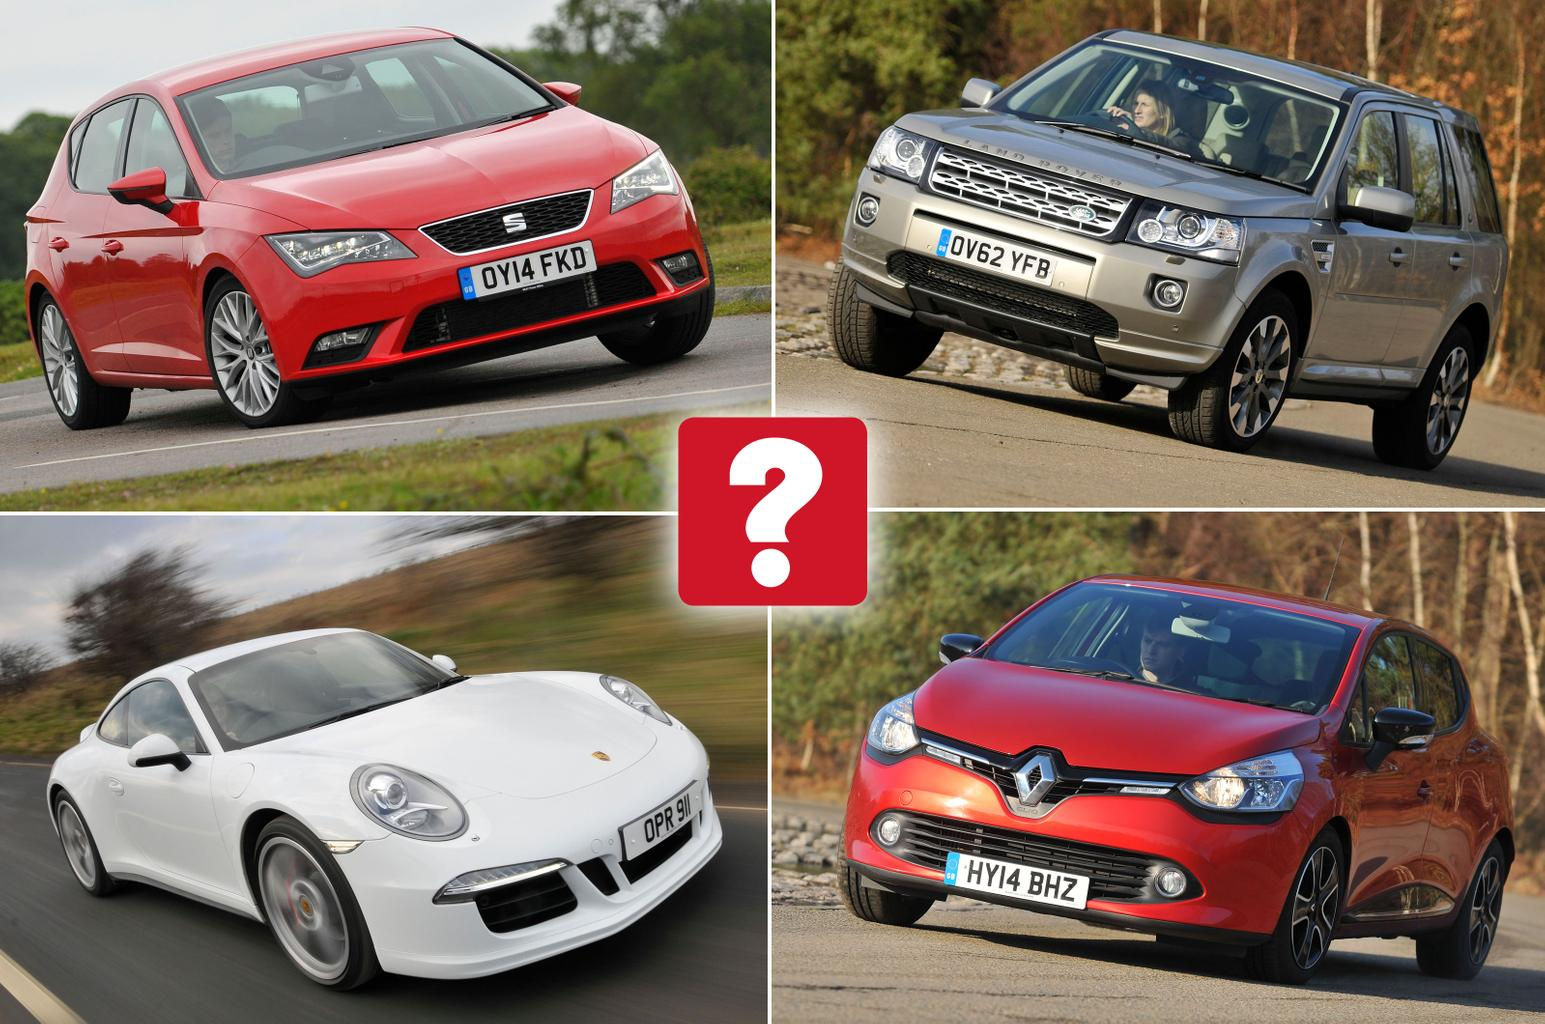 This week on Whatcar.com